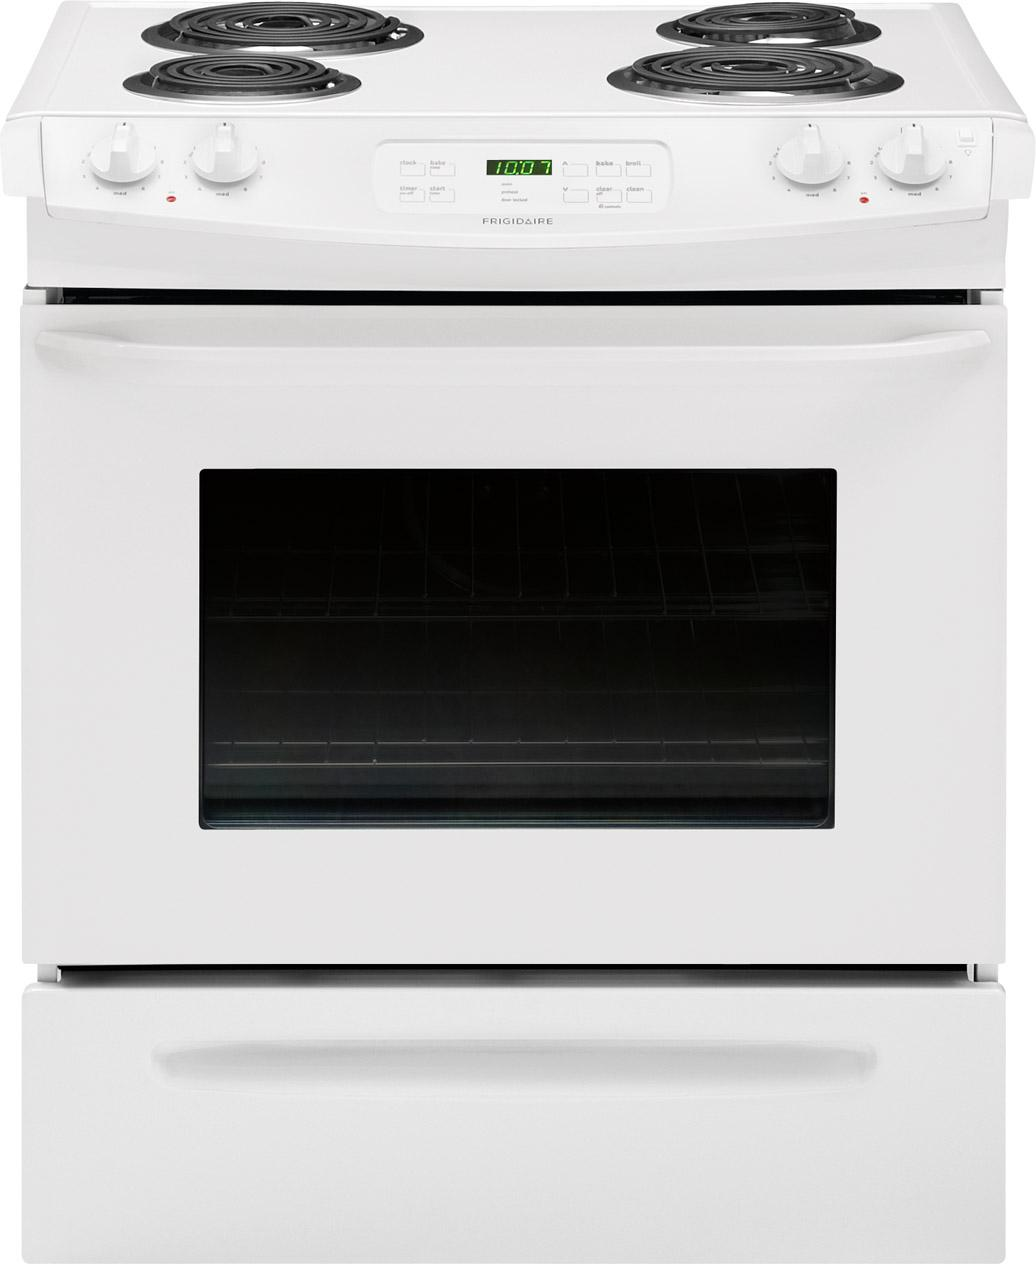 "Frigidaire Electric Range 30"" Slide-In Electric Range - Item Number: FFES3015PW"